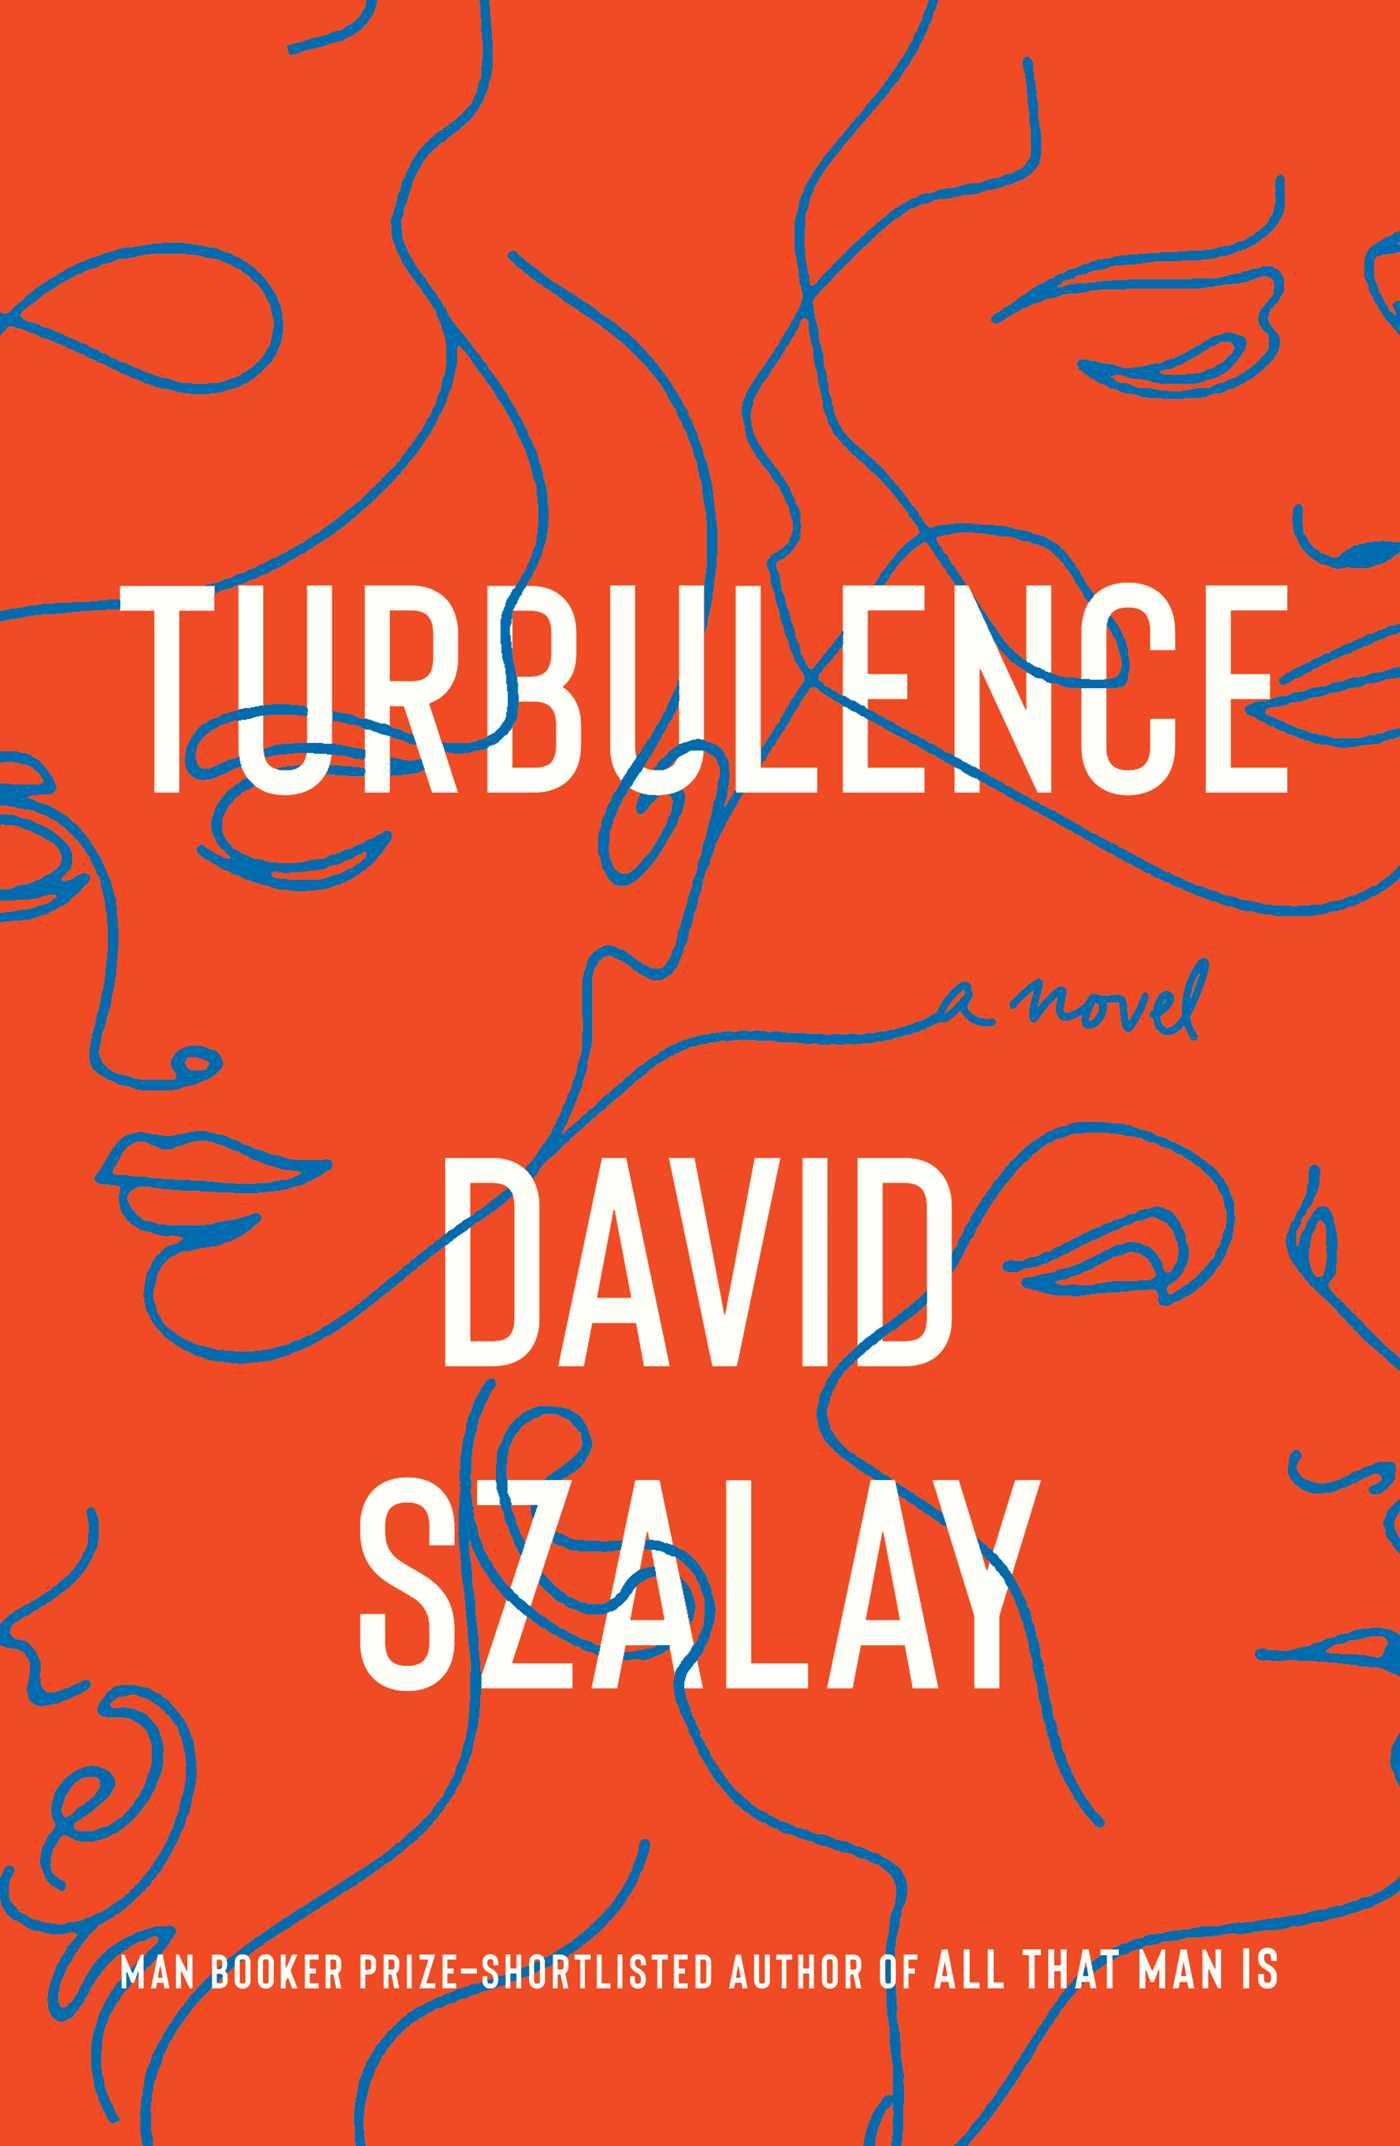 Turbulence | Book by David Szalay | Official Publisher Page